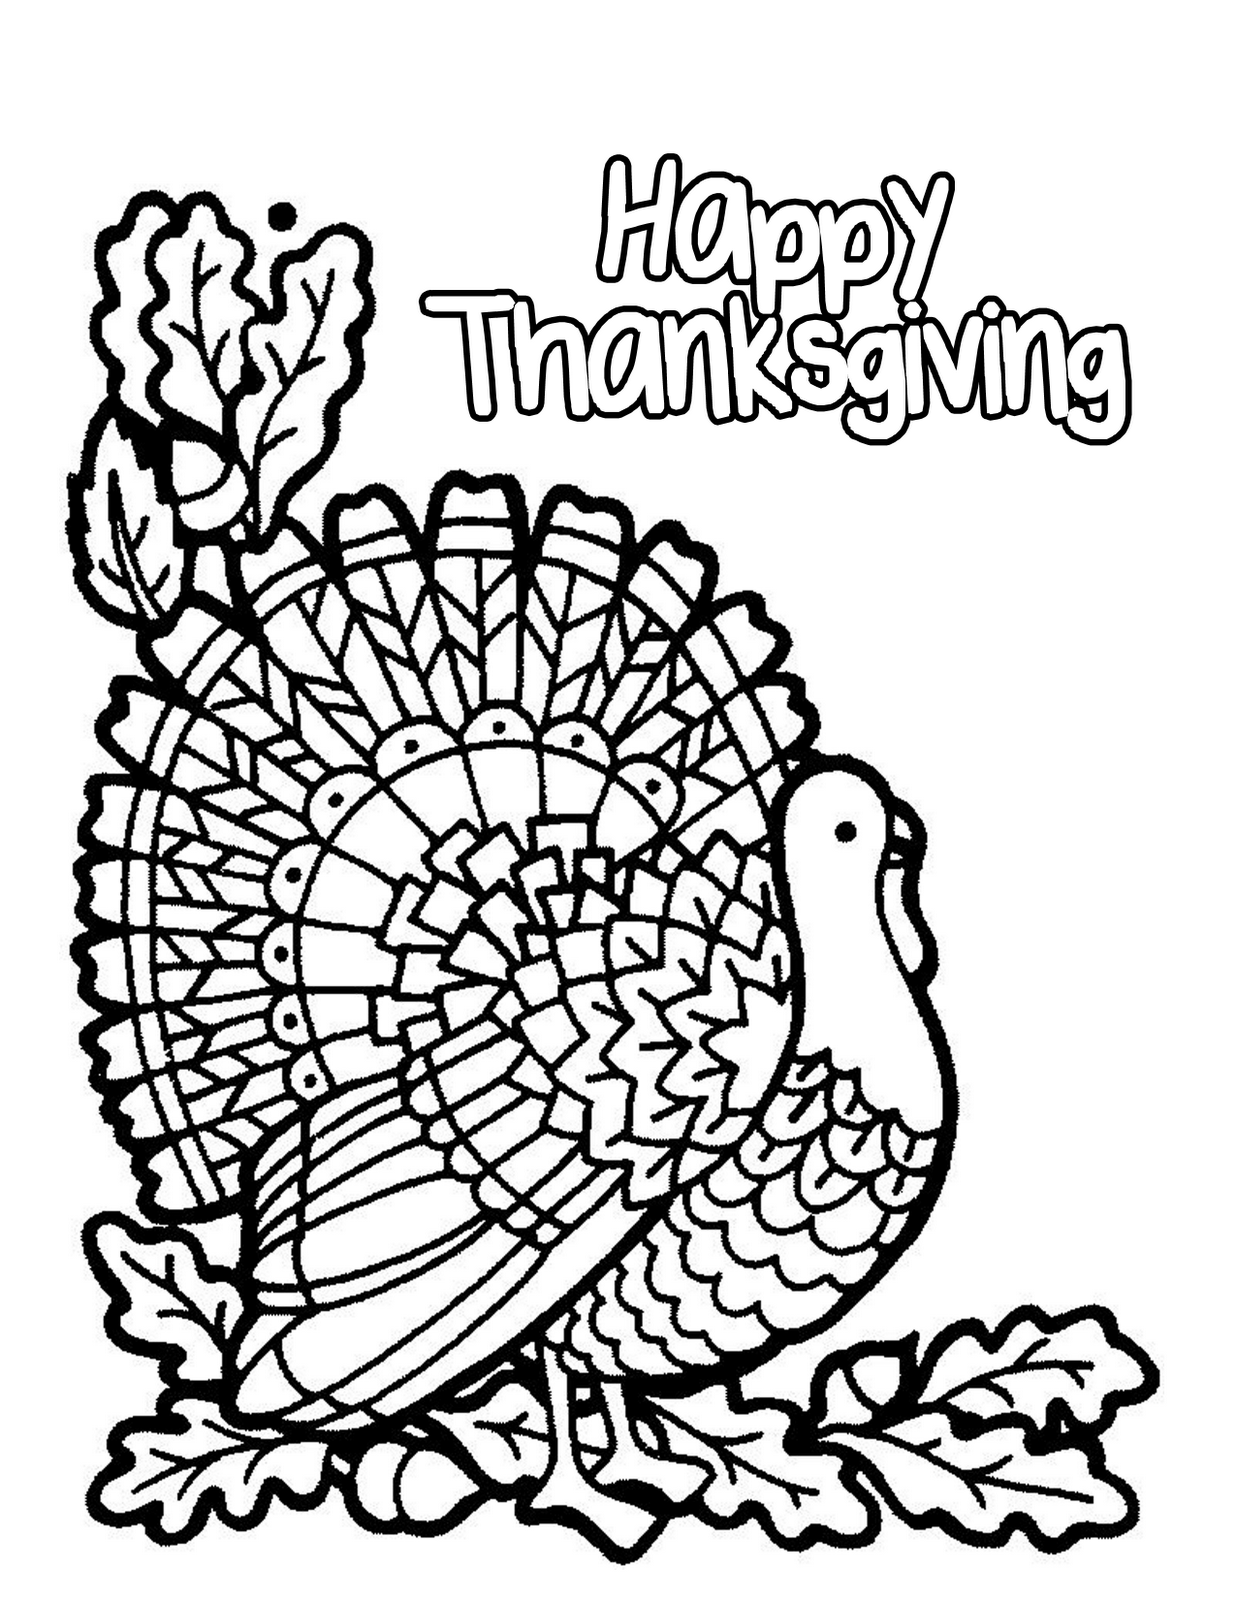 1236x1600 Turkey Happy Thanksgiving Coloring Pages Children And Free